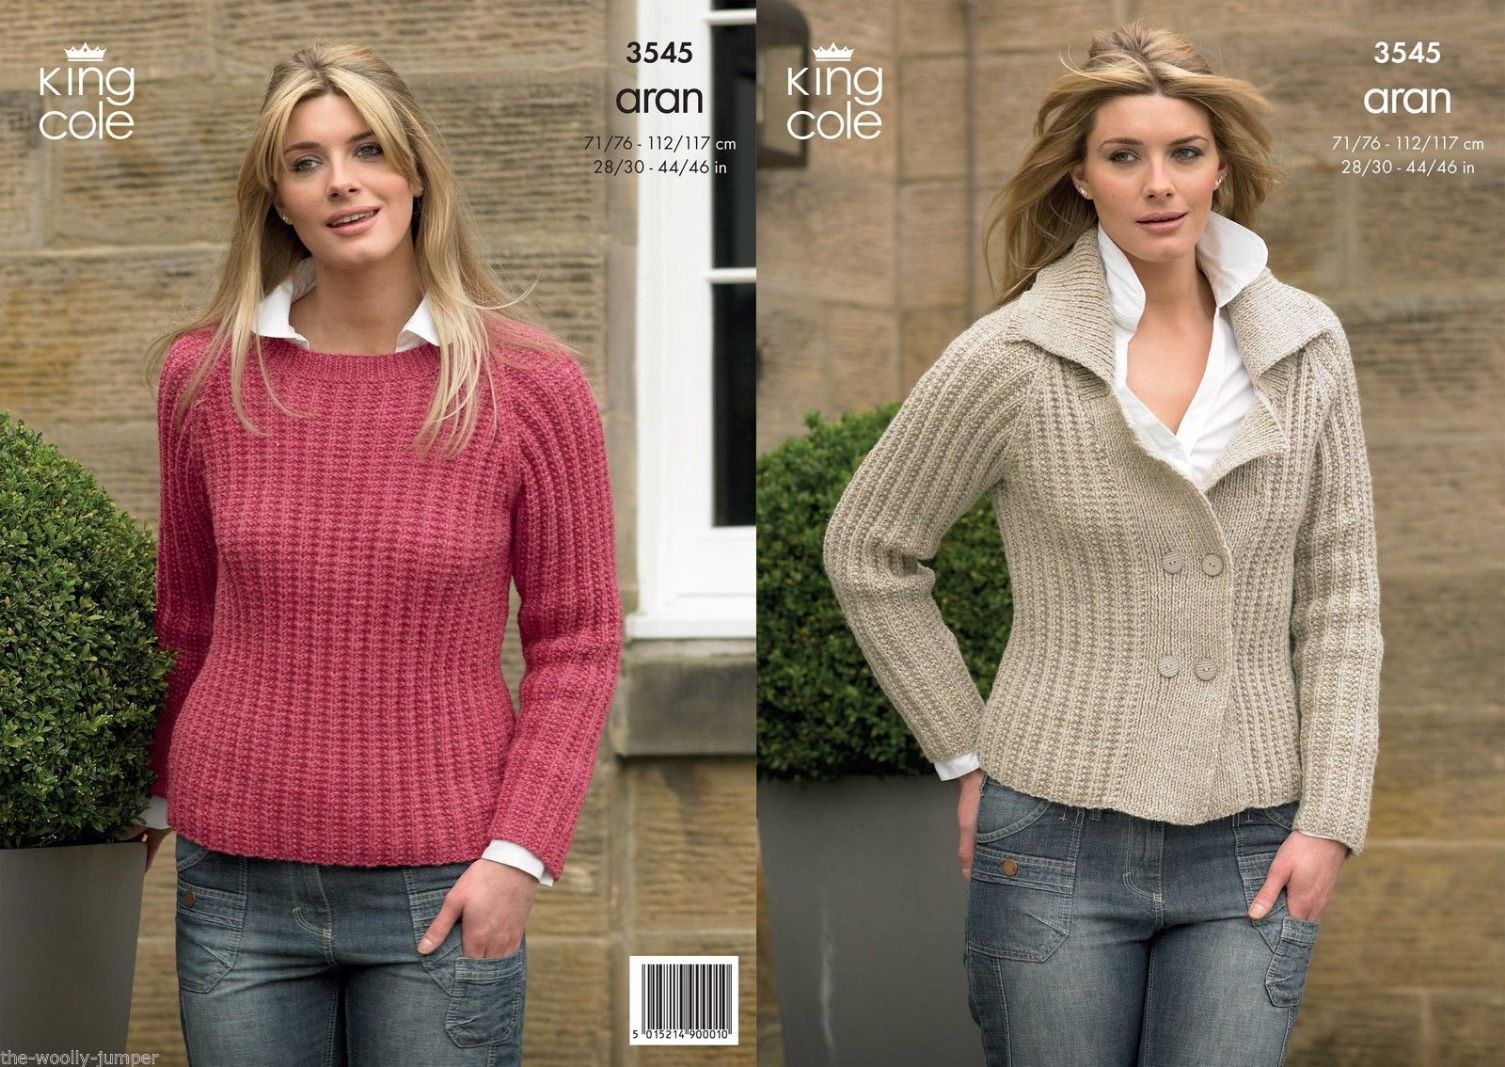 3545 - KING COLE FASHION ARAN SWEATER & JACKET KNITTING PATTERN - TO ...